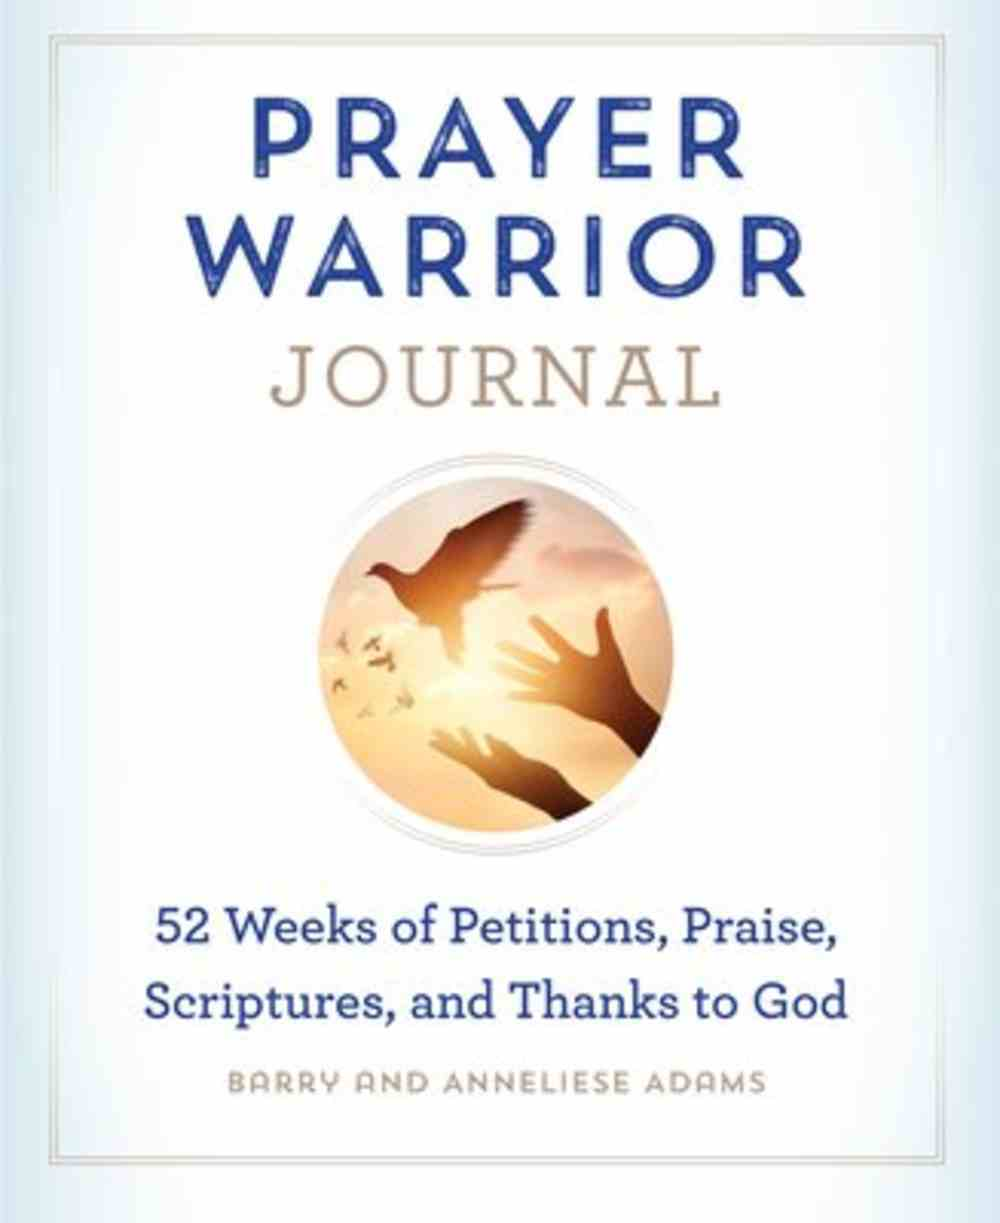 Prayer Warrior Journal: 52-Weeks of Petitions, Praise, Scriptures, and Thanks to God Paperback